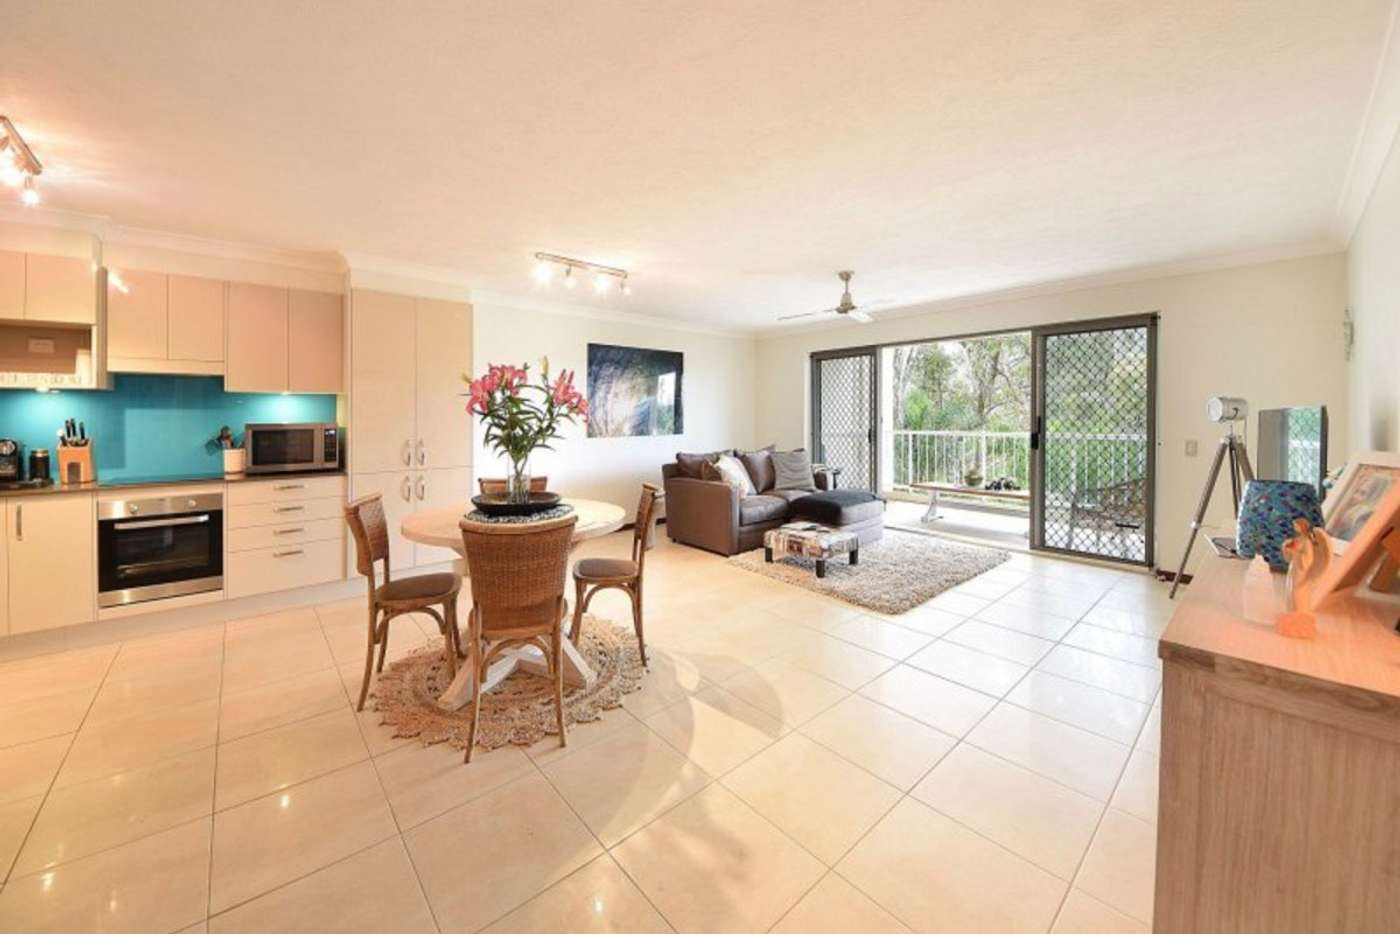 Main view of Homely apartment listing, 12/14 Brake Street, Burleigh Heads QLD 4220